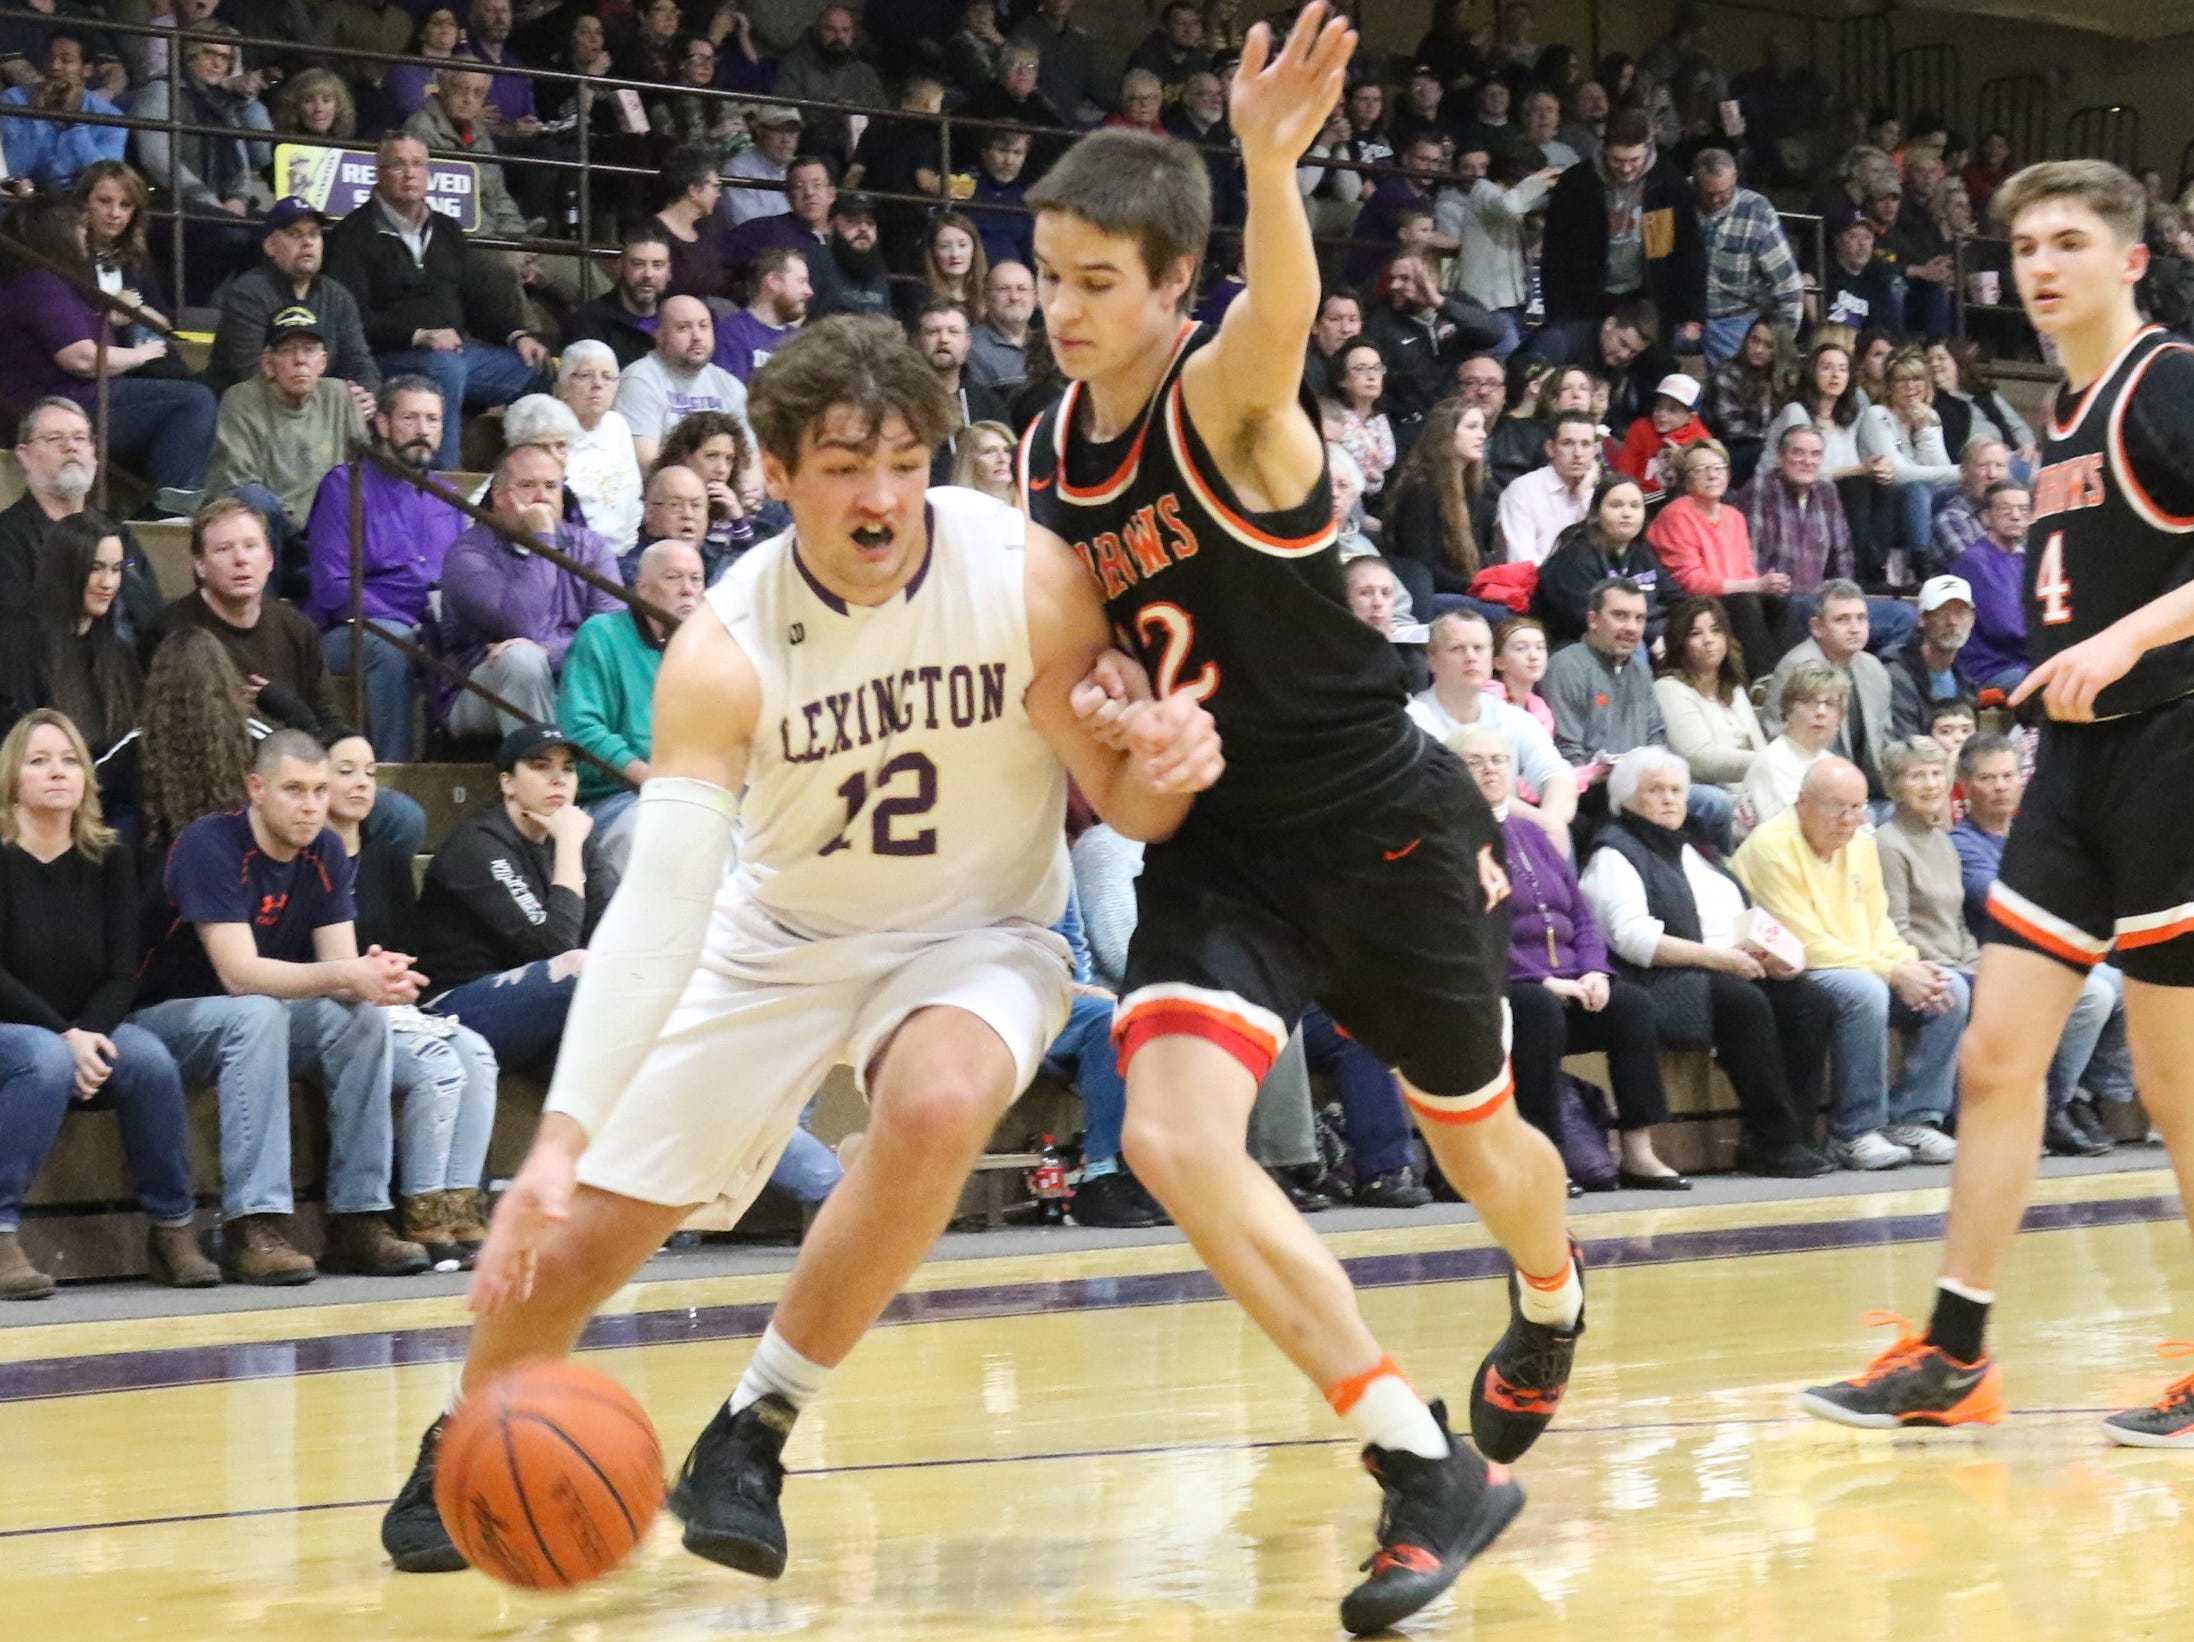 Lexington's Ben Vore drives to the hoop in the Minutemen's victory over Ashland on Friday night.